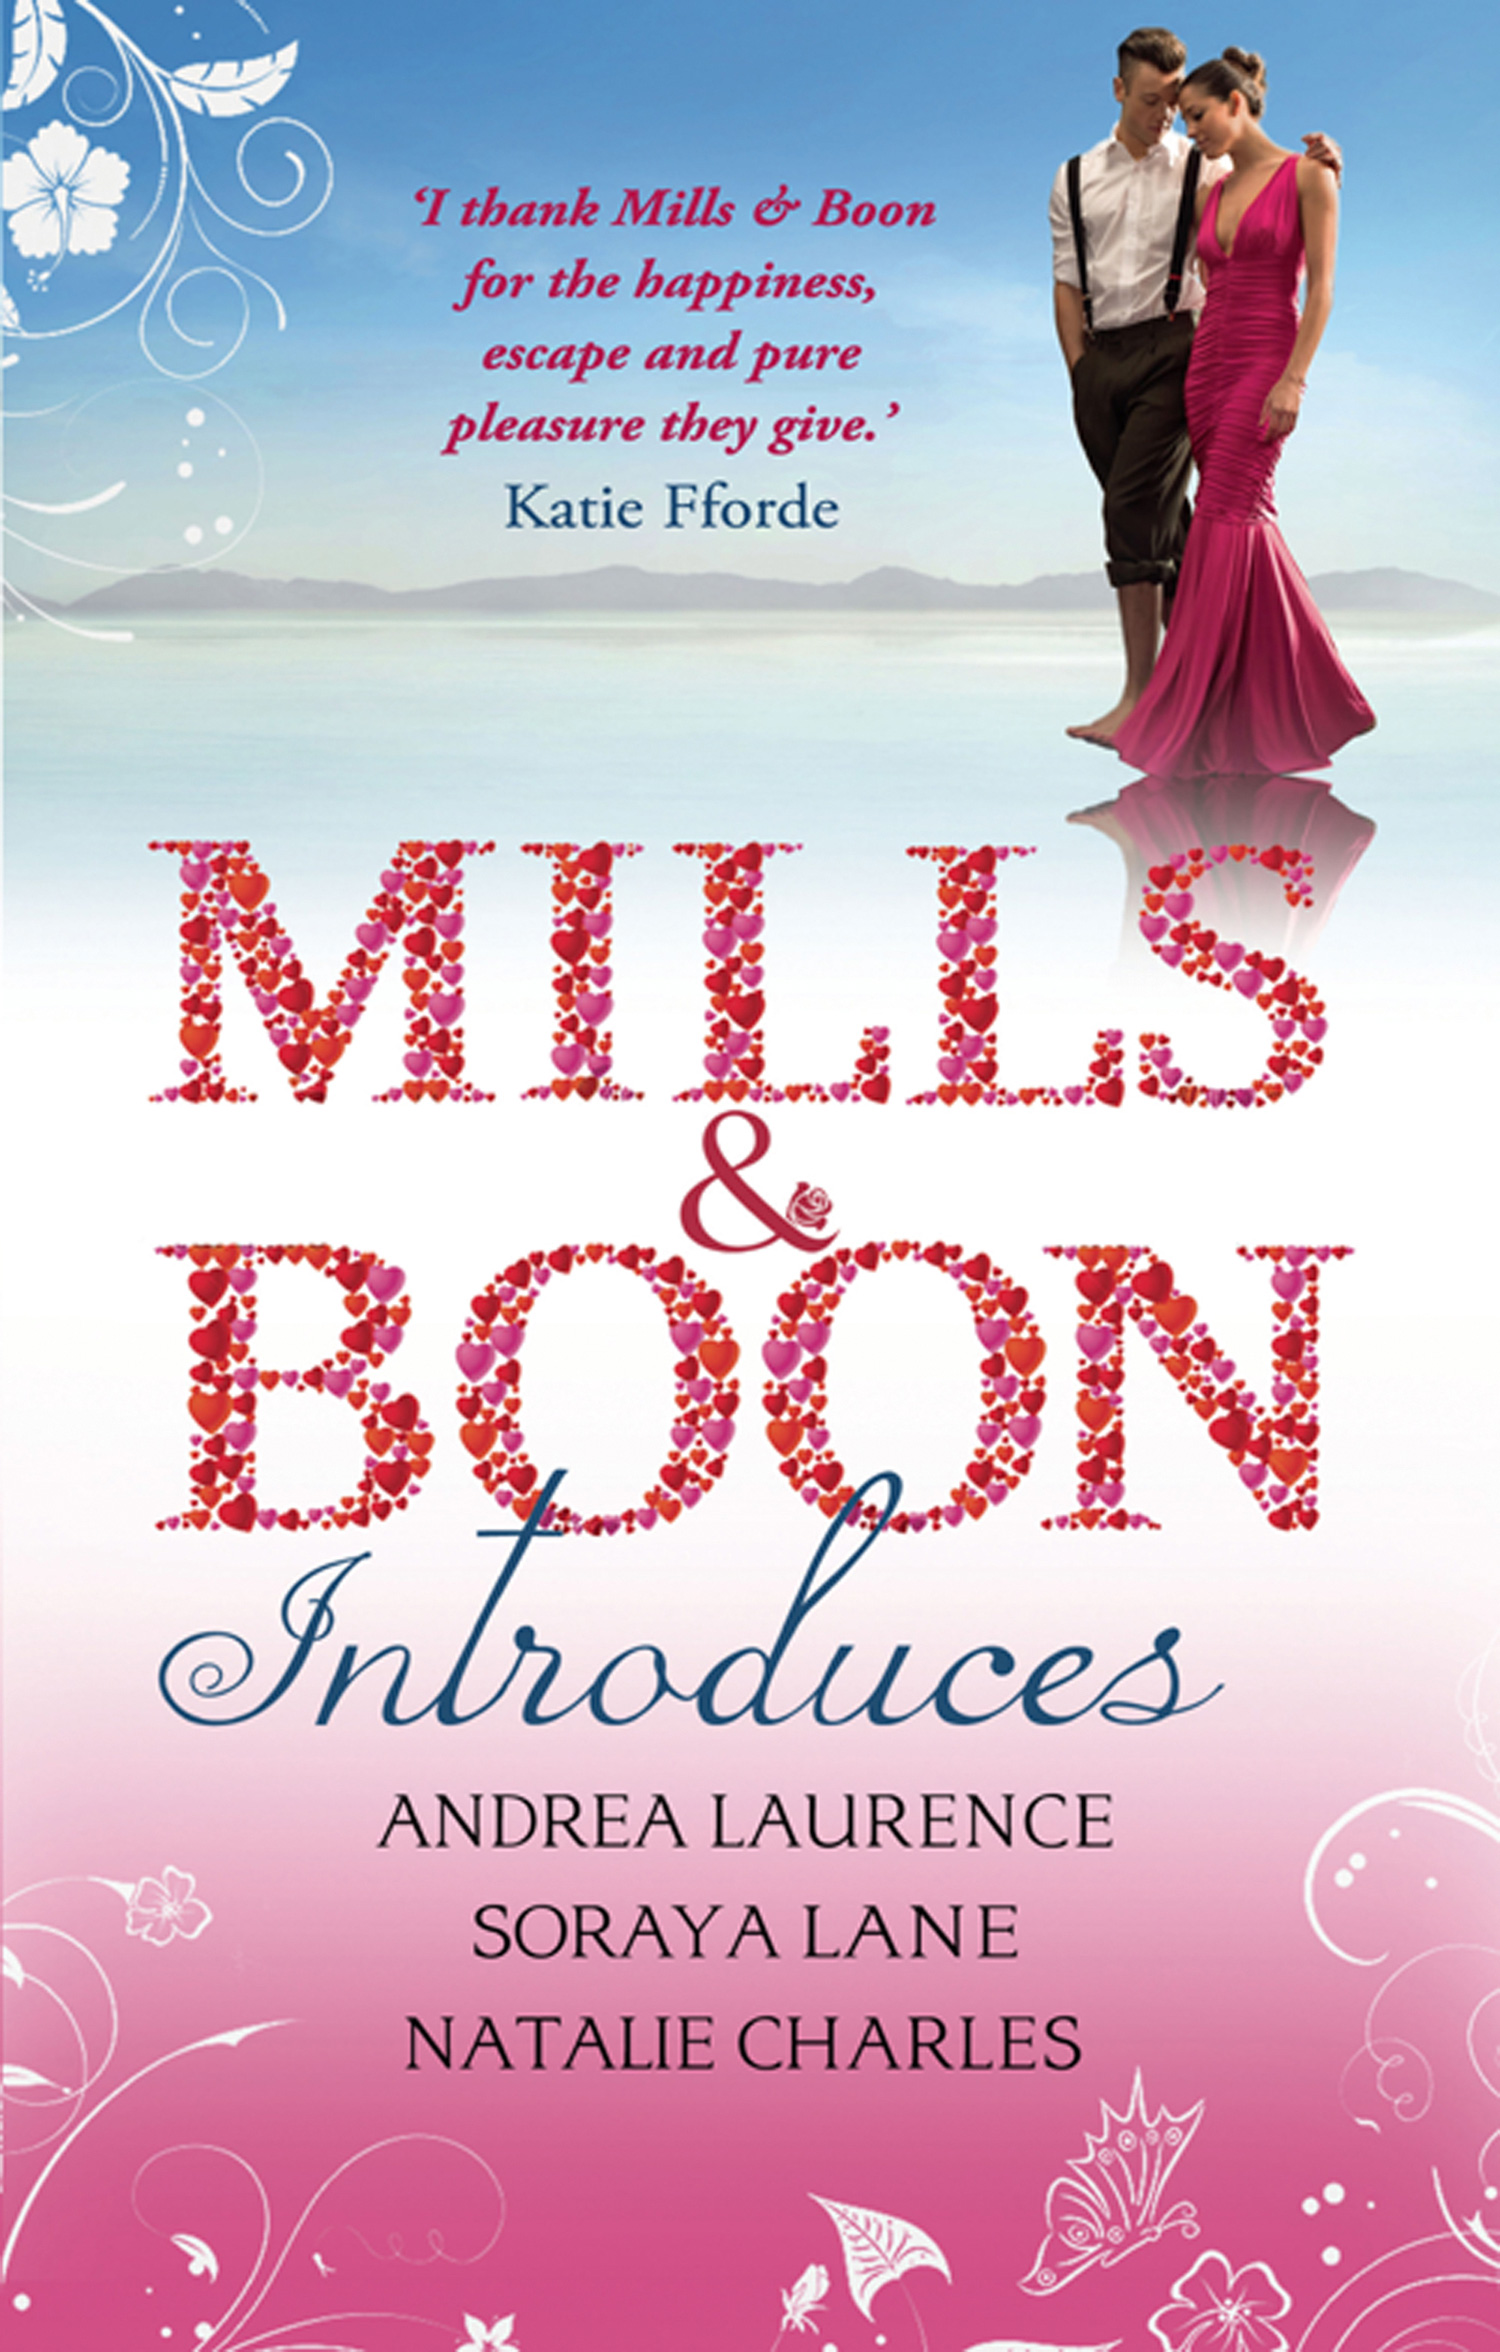 Mills & Boon Introduces